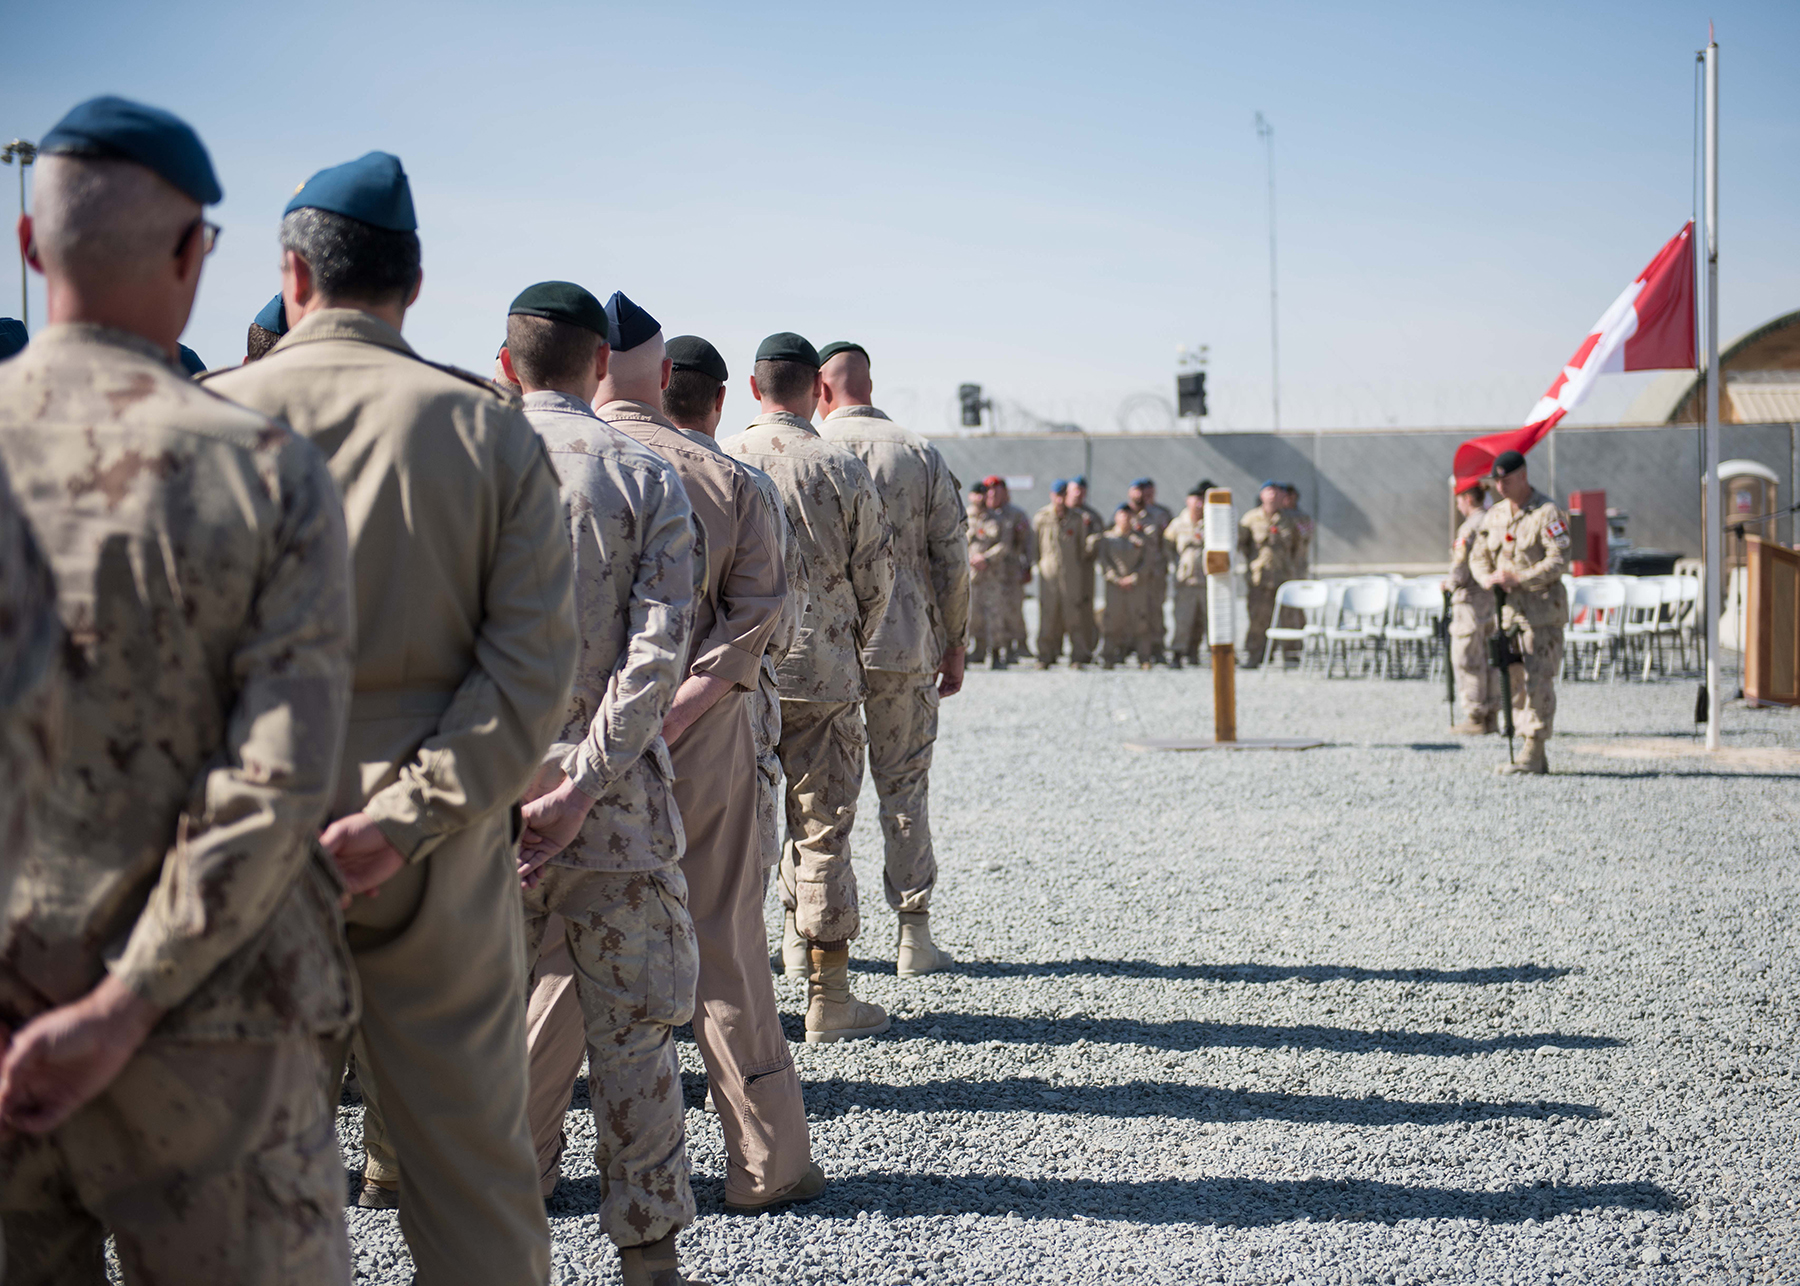 Men and women of Joint Task Force - Iraq observe Remembrance Day at a parade in Camp Canada on November 11, 2016. PHOTO: Operation Impact